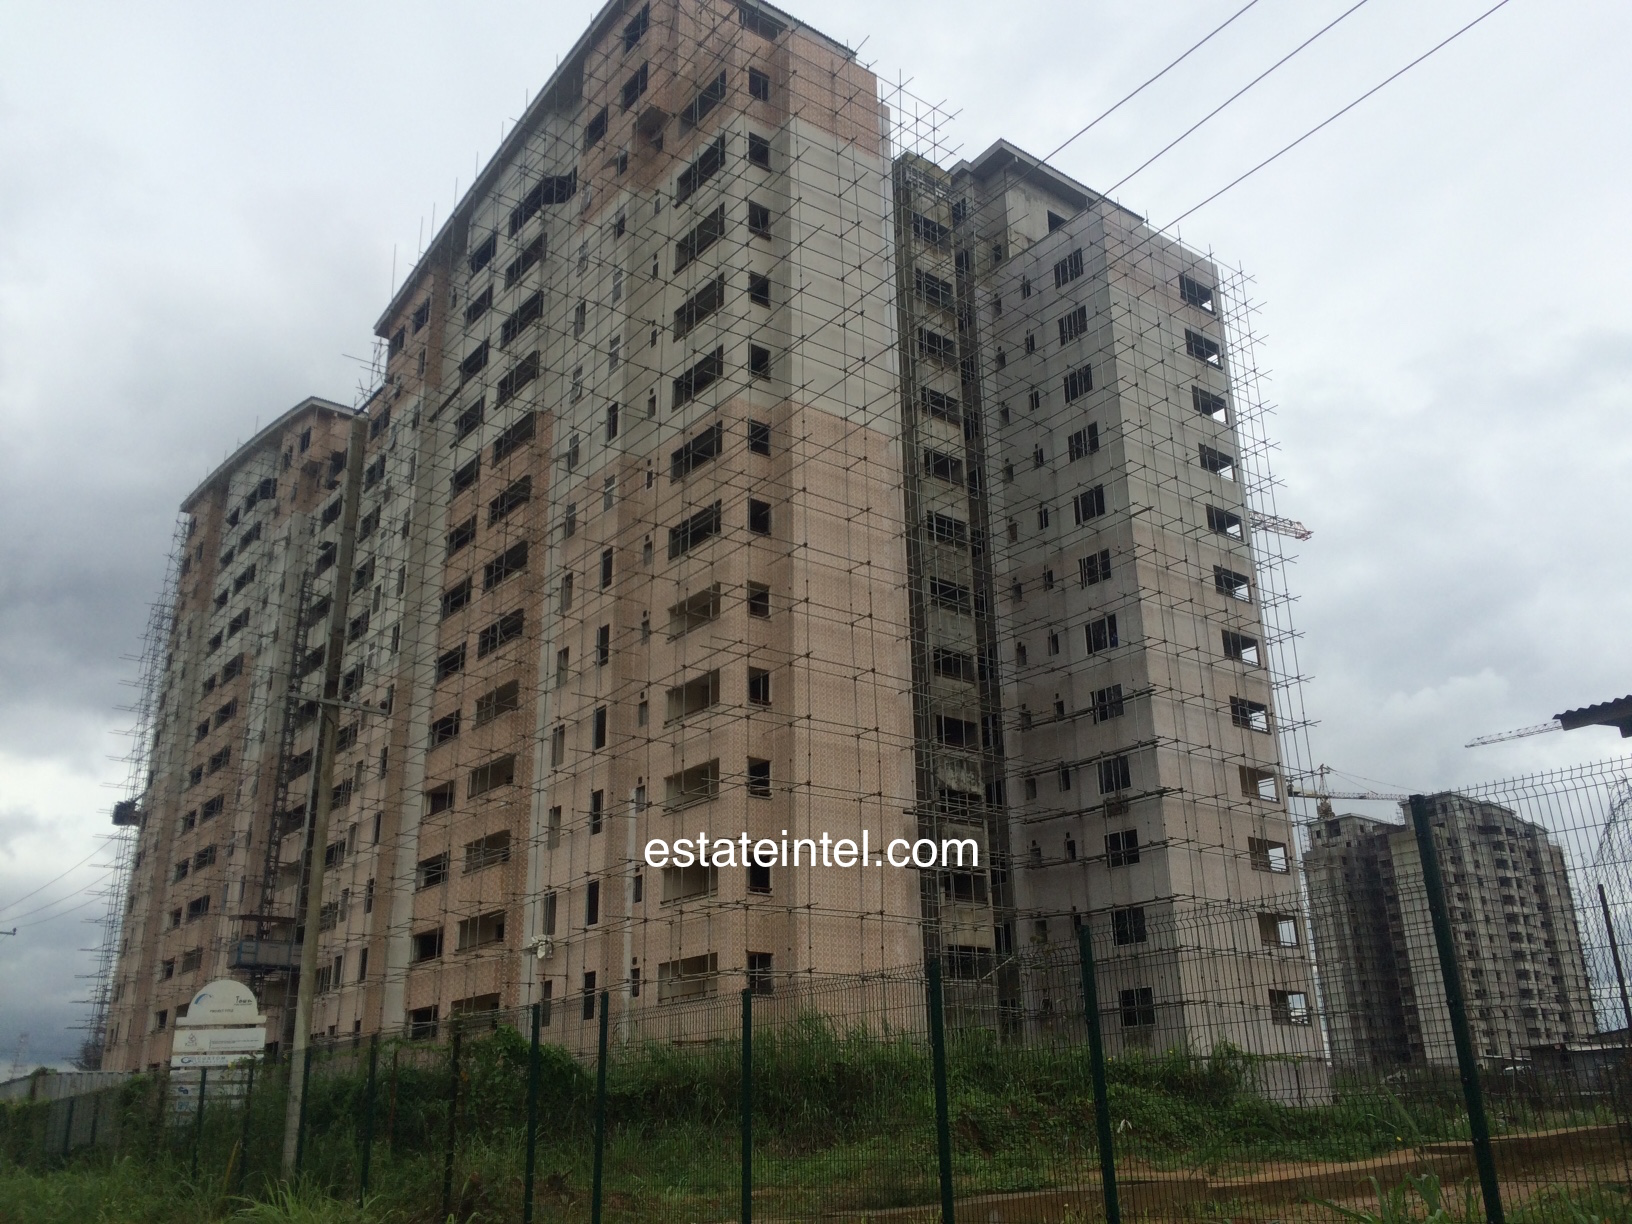 Point Block Tower - Rainbow Town, Port Harcourt. Image Source: estateintel.com